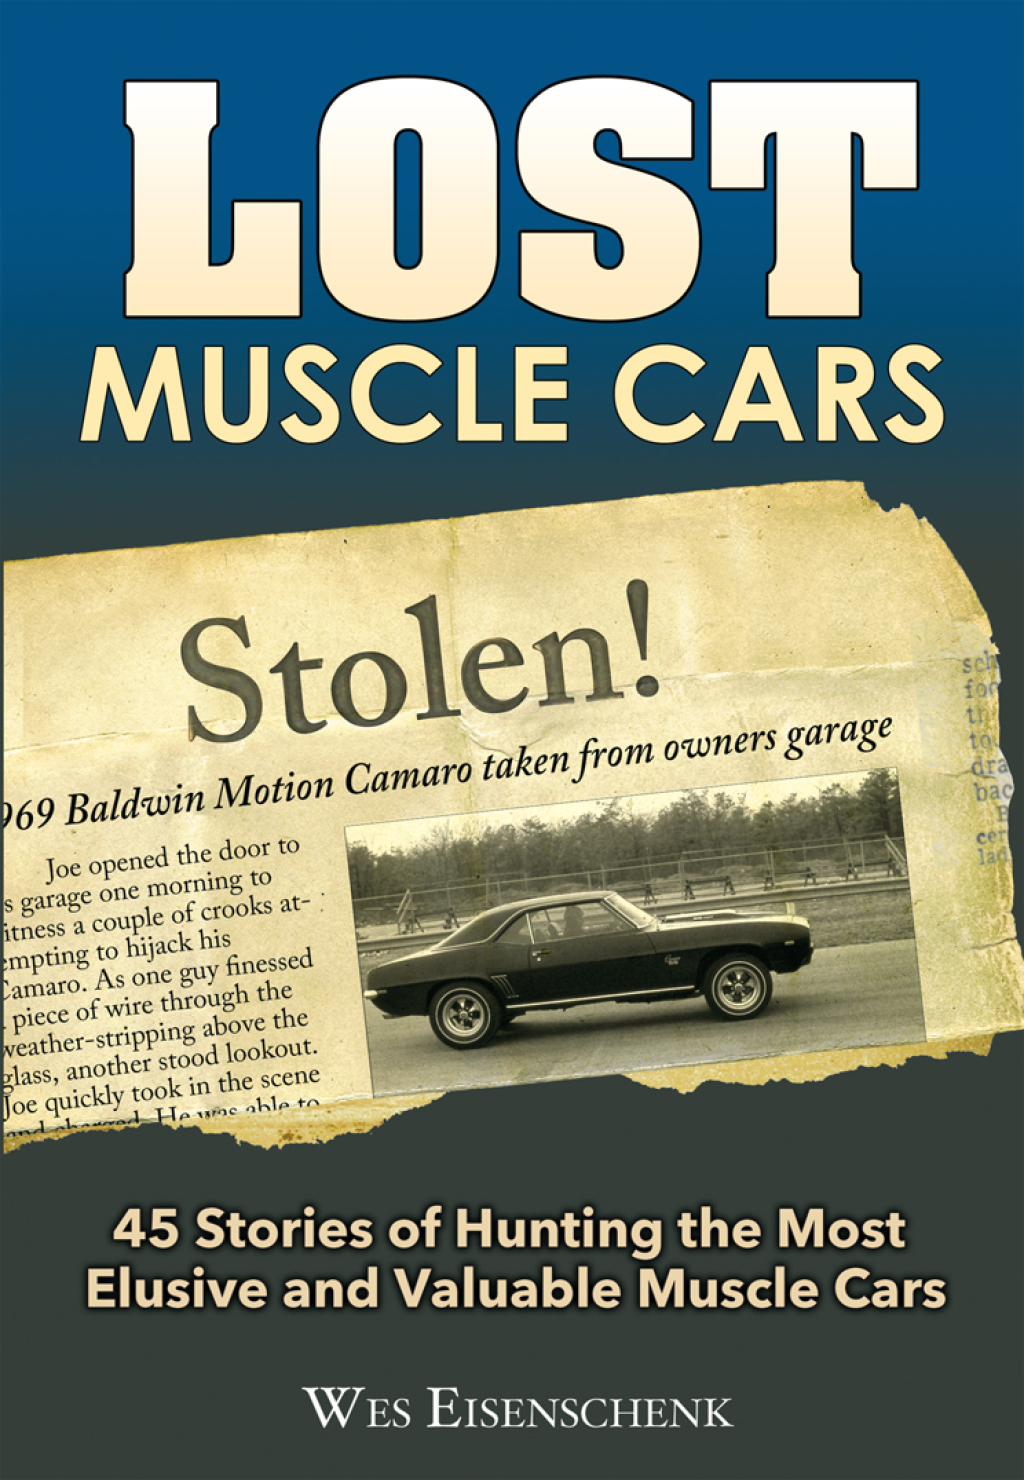 Lost Muscle Cars (eBook)